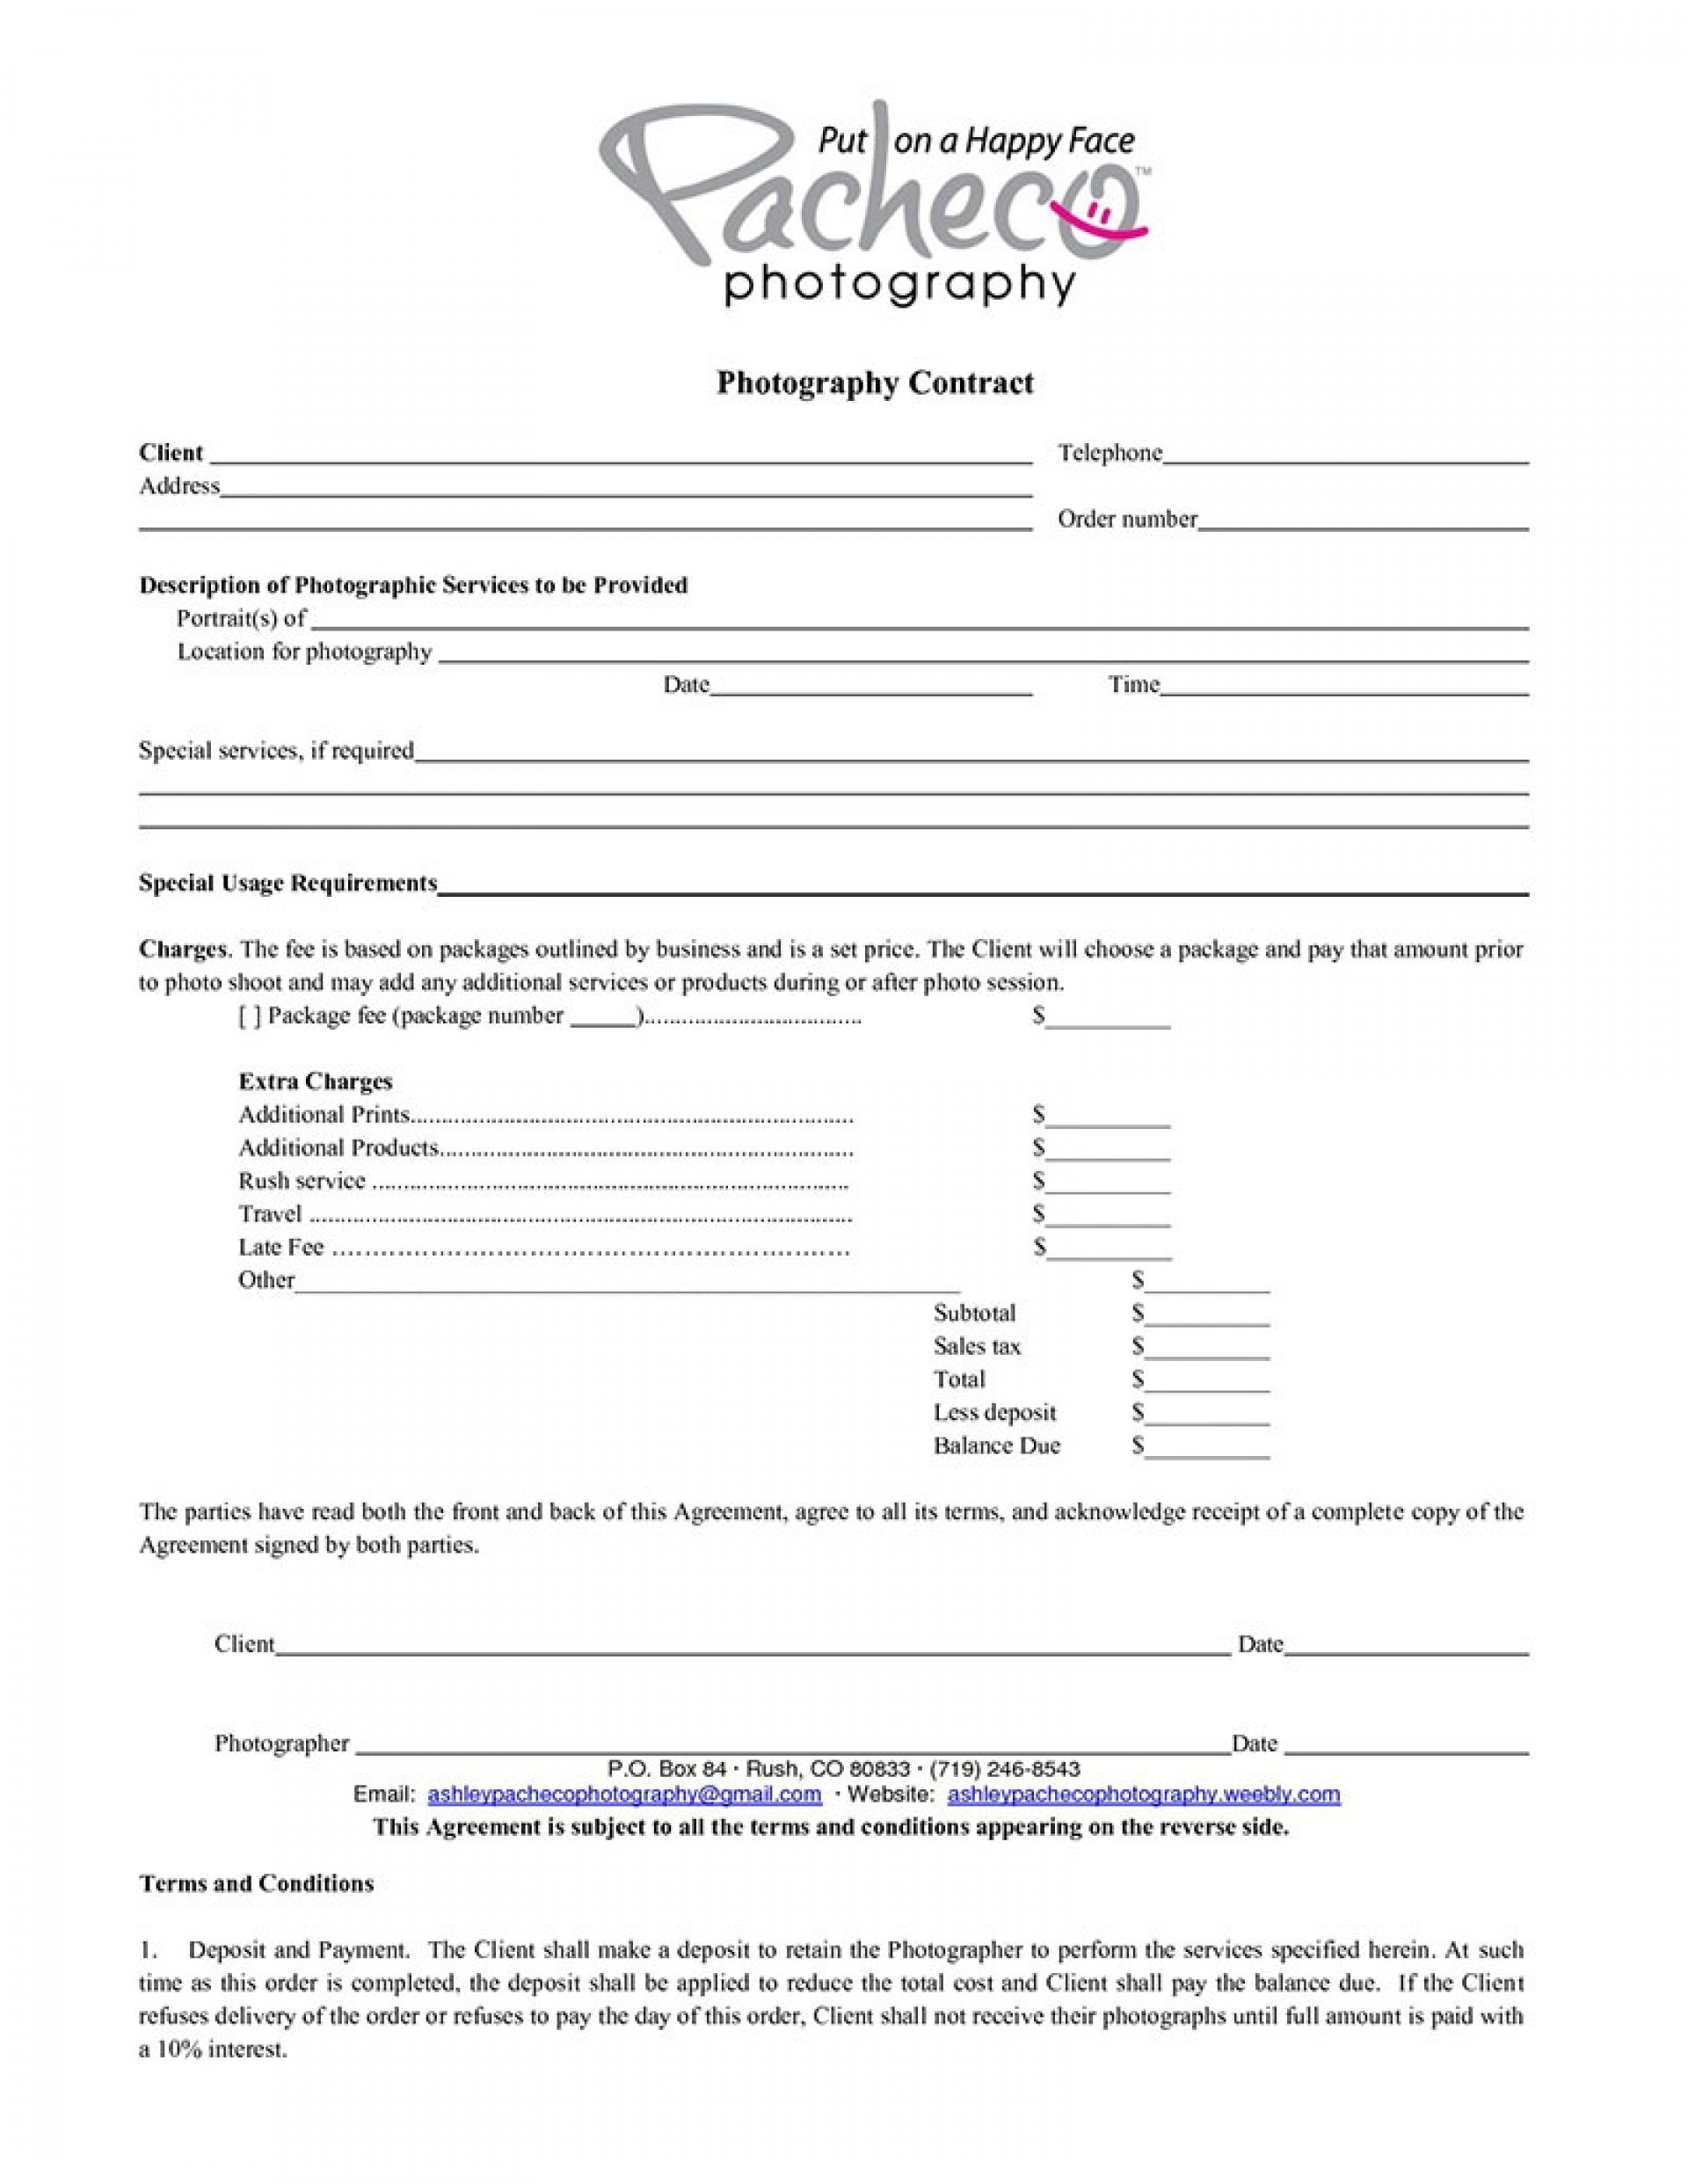 005 Fantastic Wedding Photographer Contract Template Concept  Free Photography Uk1920